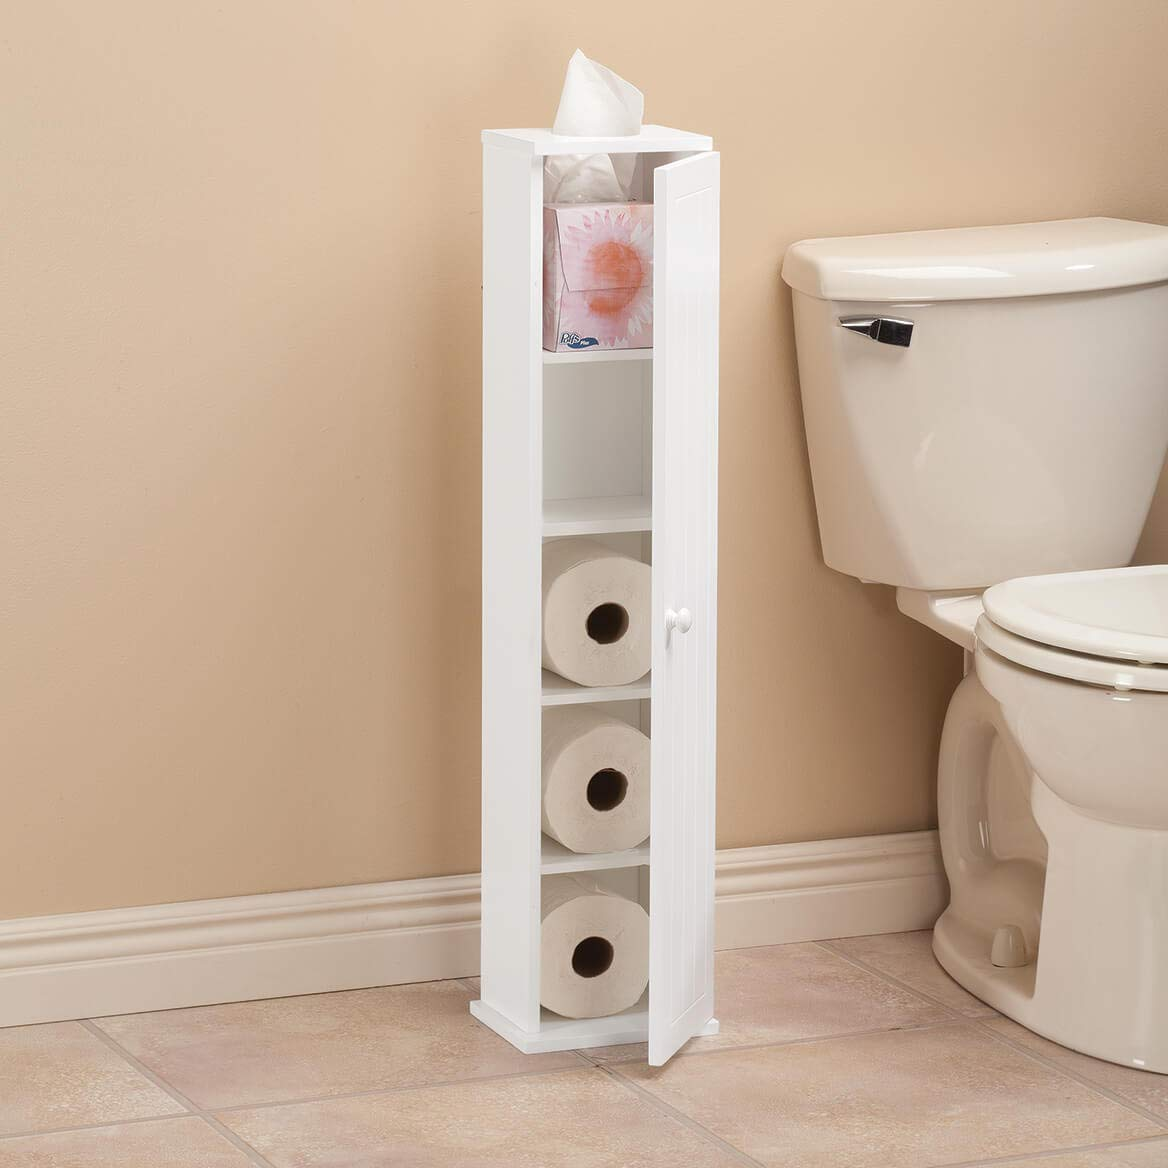 OakRidge Ambrose Collection Mega Roll Toilet Tissue Tower by OakRidge (Image #4)